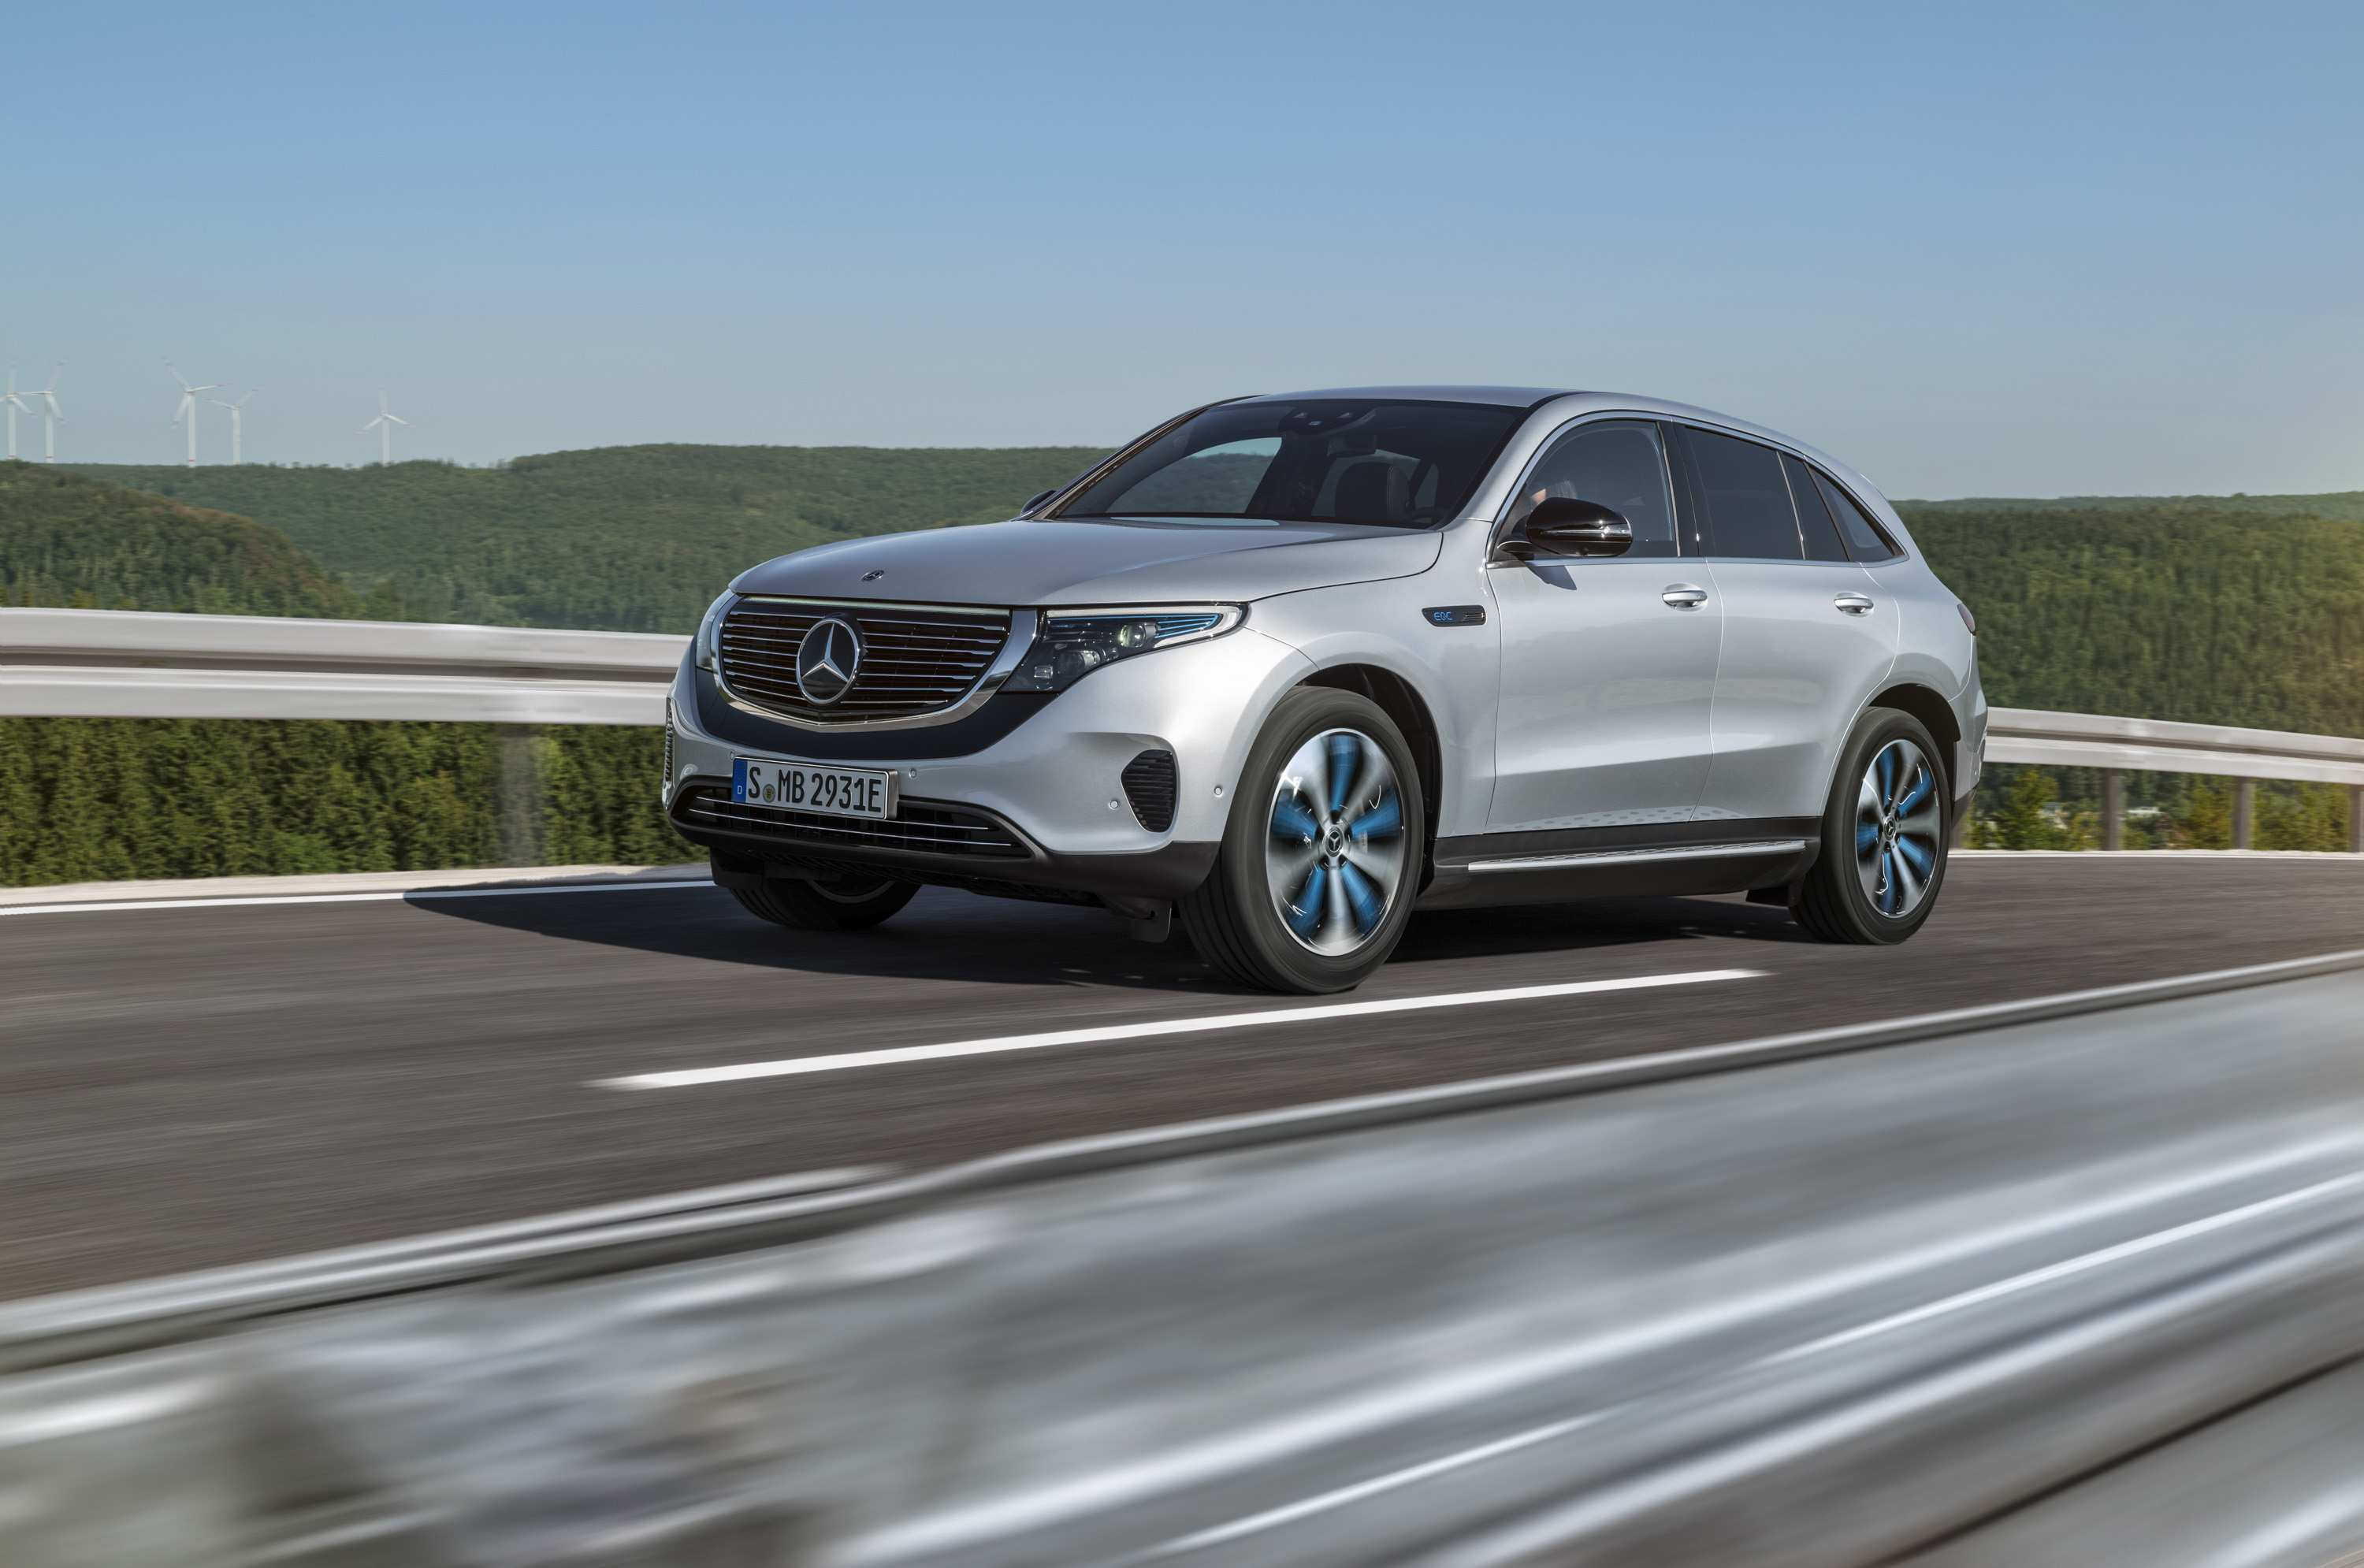 15 Great Mercedes Benz Eqc 2019 Exterior and Interior with Mercedes Benz Eqc 2019